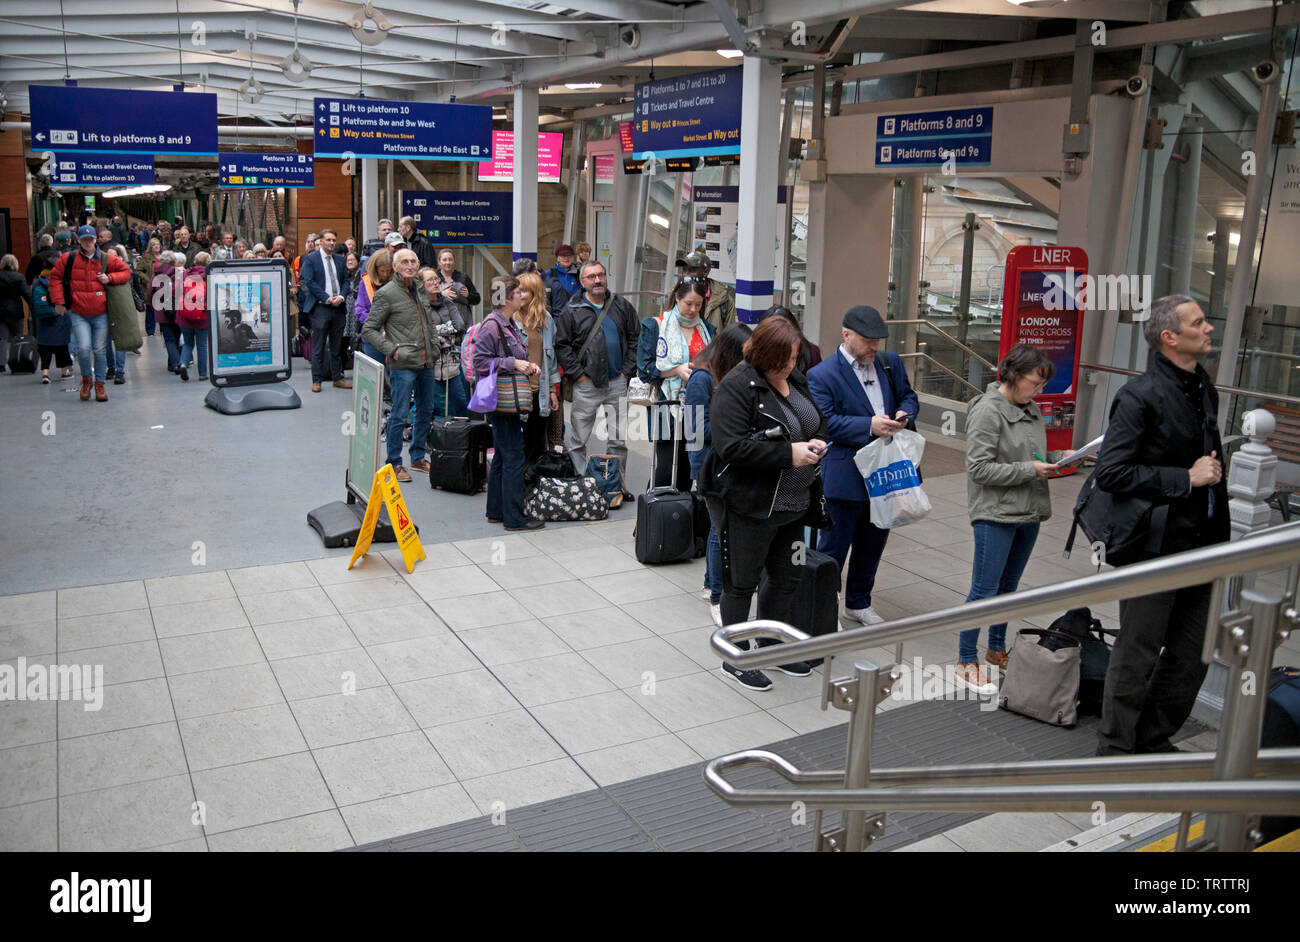 Edinburgh, UK. 12th June, 2019. Long queues of very frustrated passengers awaiting alternative transport by bus due to damage to the overhead wires between Carlisle and Lockerbie stations, all lines are blocked, Virgin Twitter feed warns 'services will be delayed as a result. Passengers require to check for updates to your journeys/services' Credit: Arch White/Alamy Live News - Stock Image